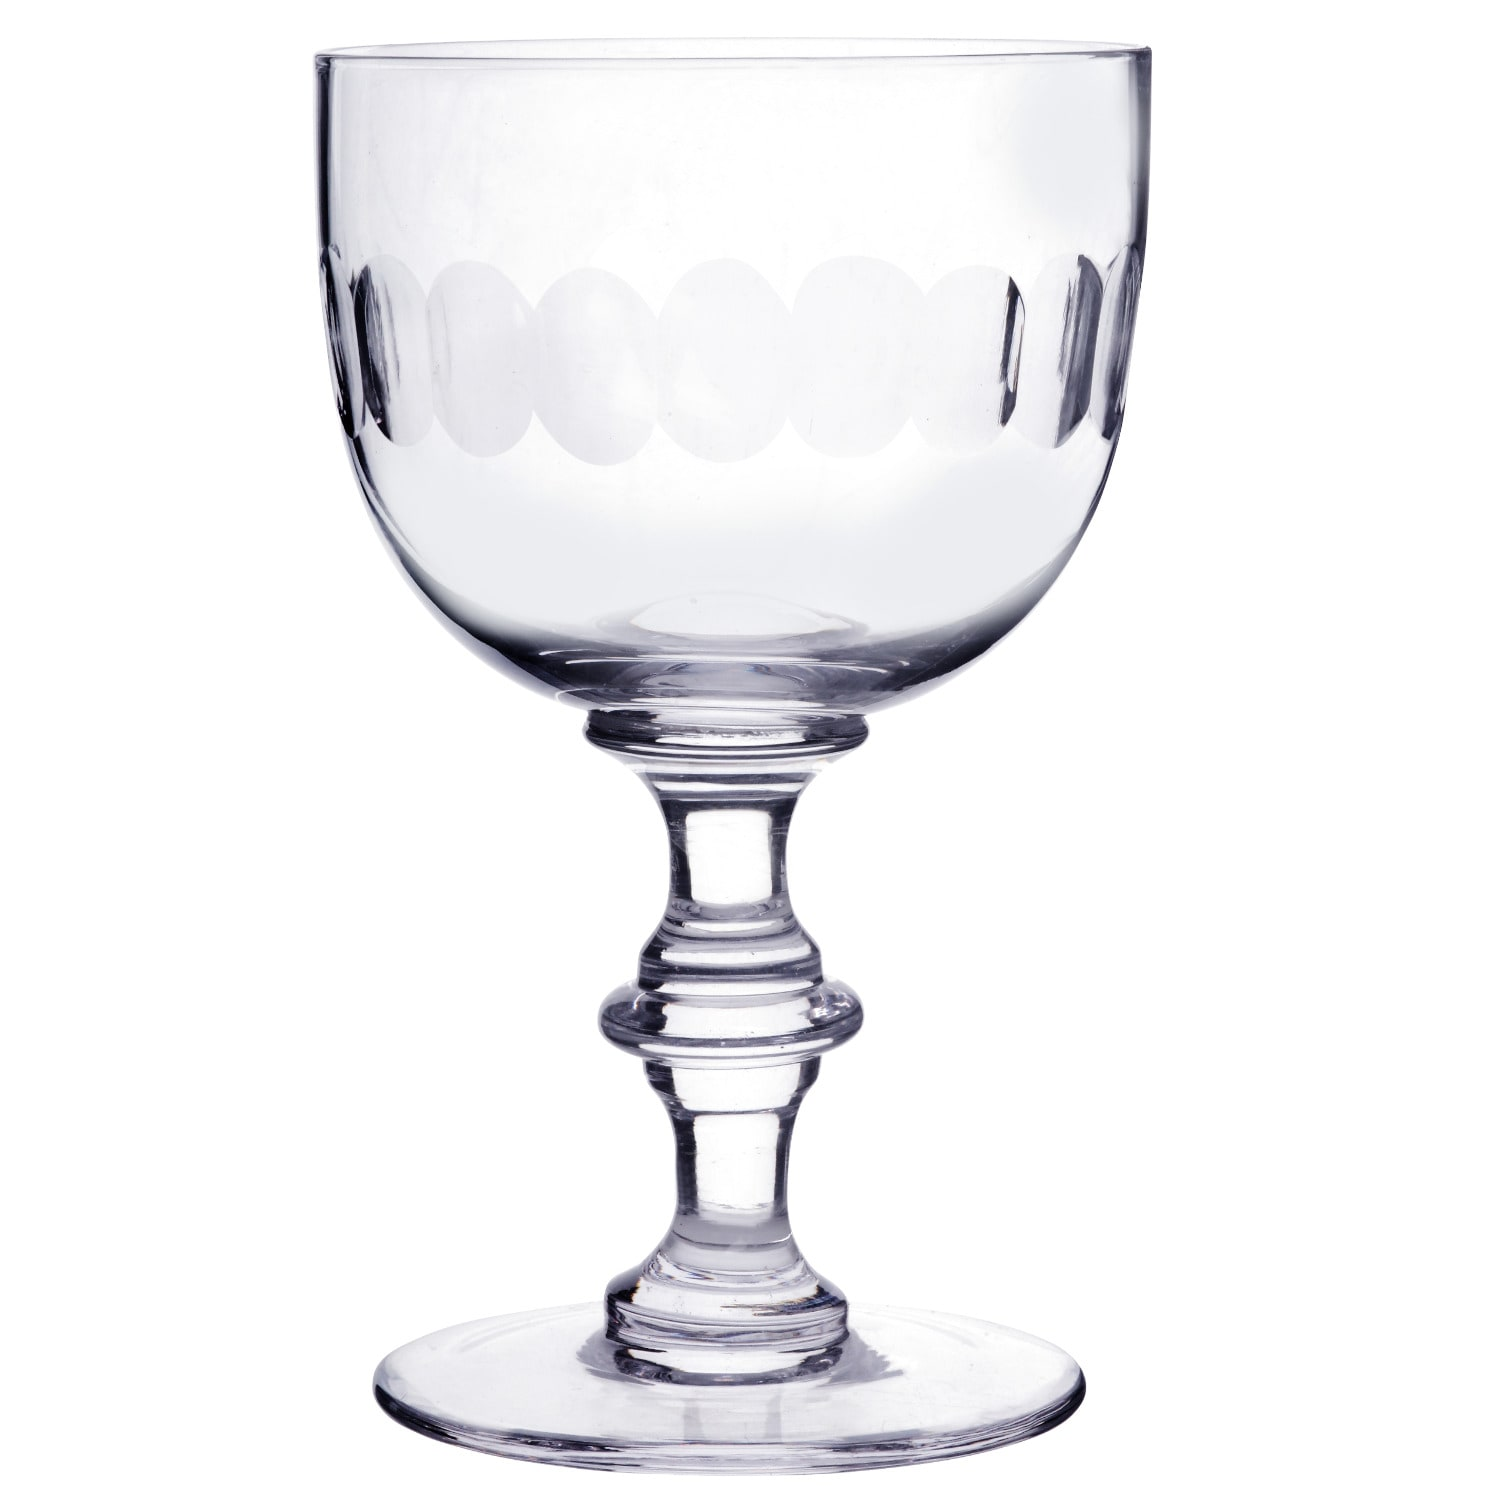 The Vintage List - Six Hand Engraved Crystal Wine Goblets With Lens Design